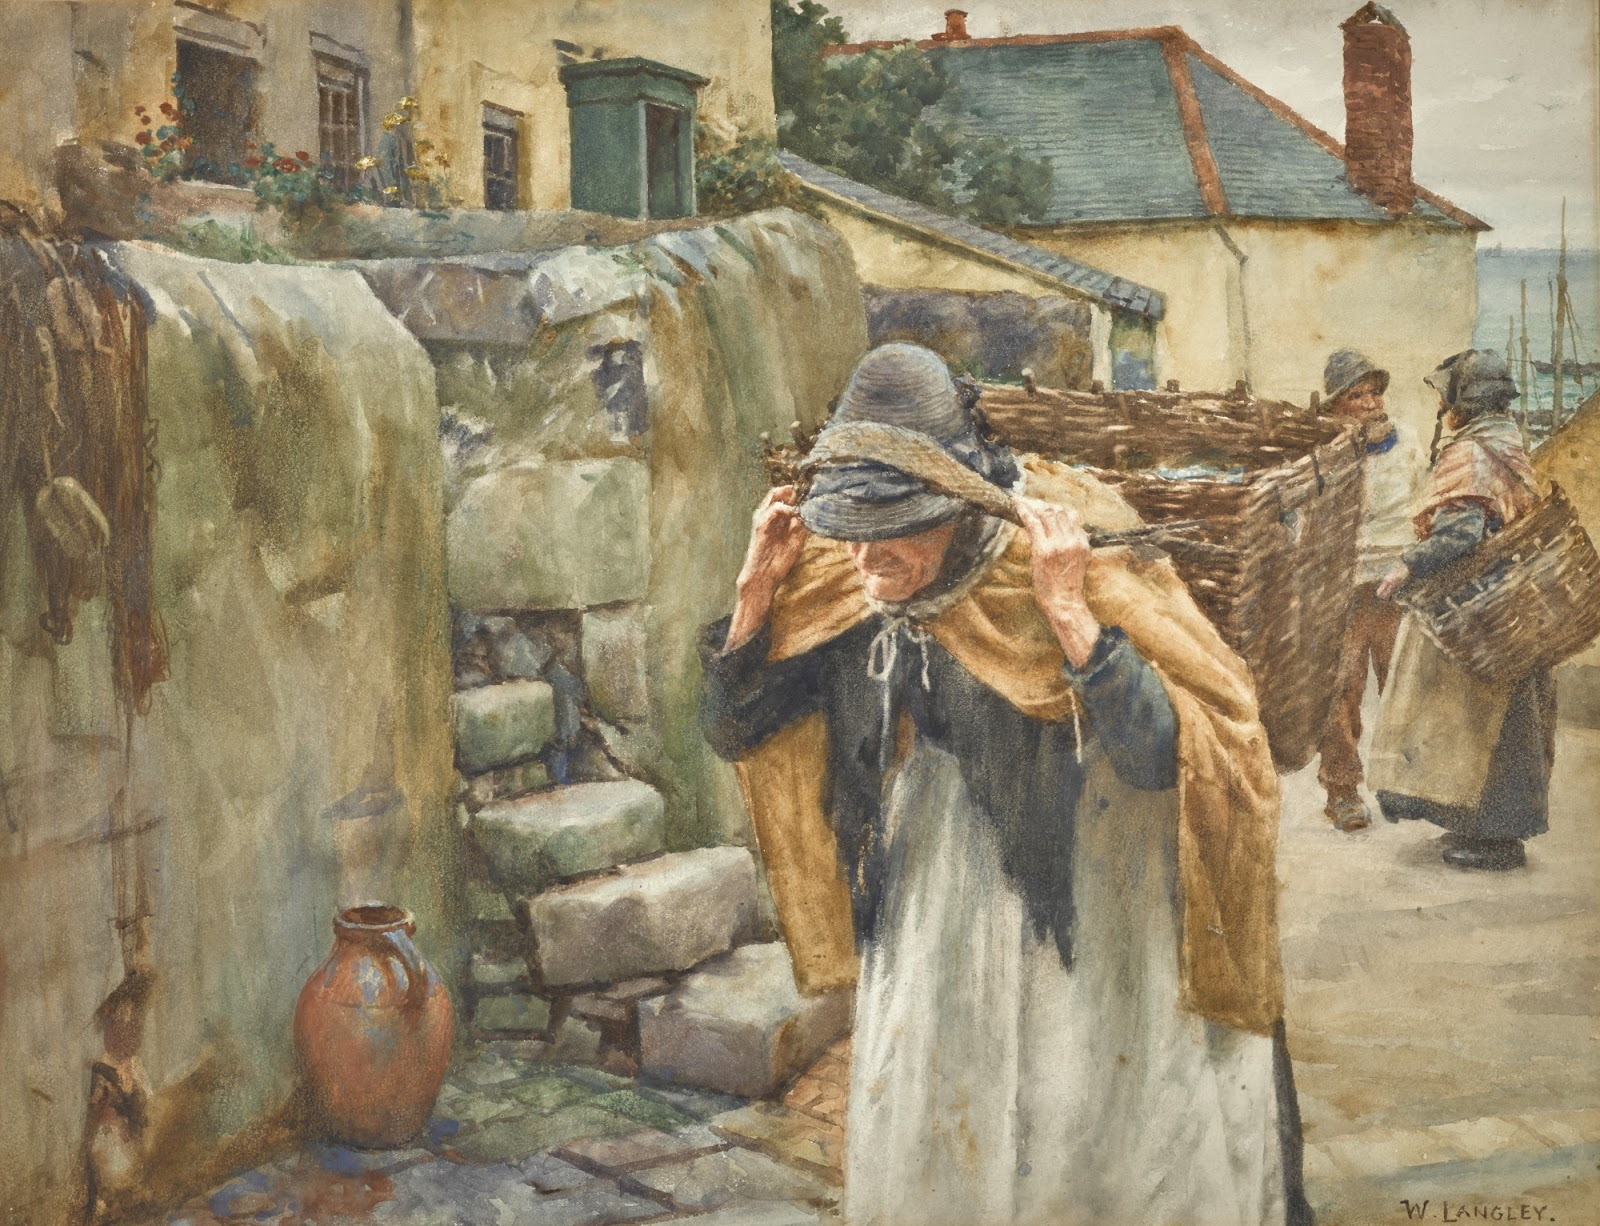 Walter Langley Carrying The Catch